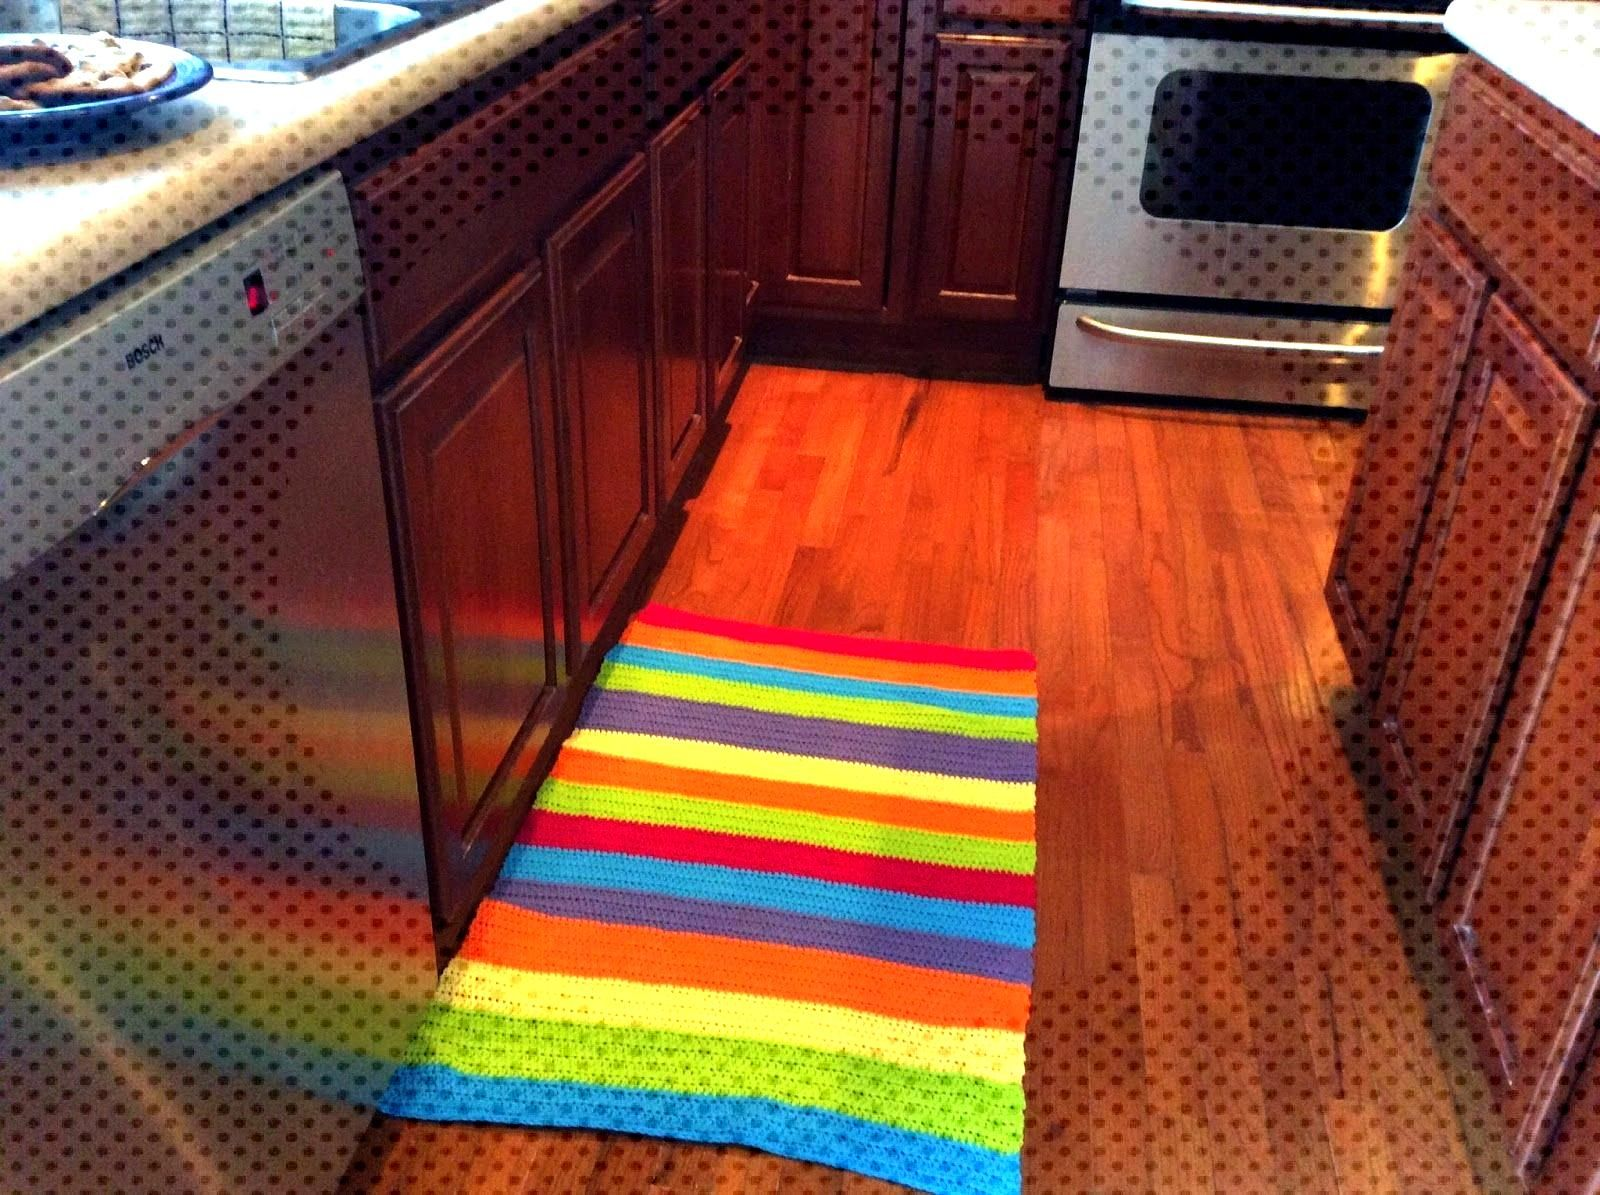 Scrap Happiness: Crocheted kitchen rug is done, thanks to McLeod's Daughters -  Scrap Happiness: Cr